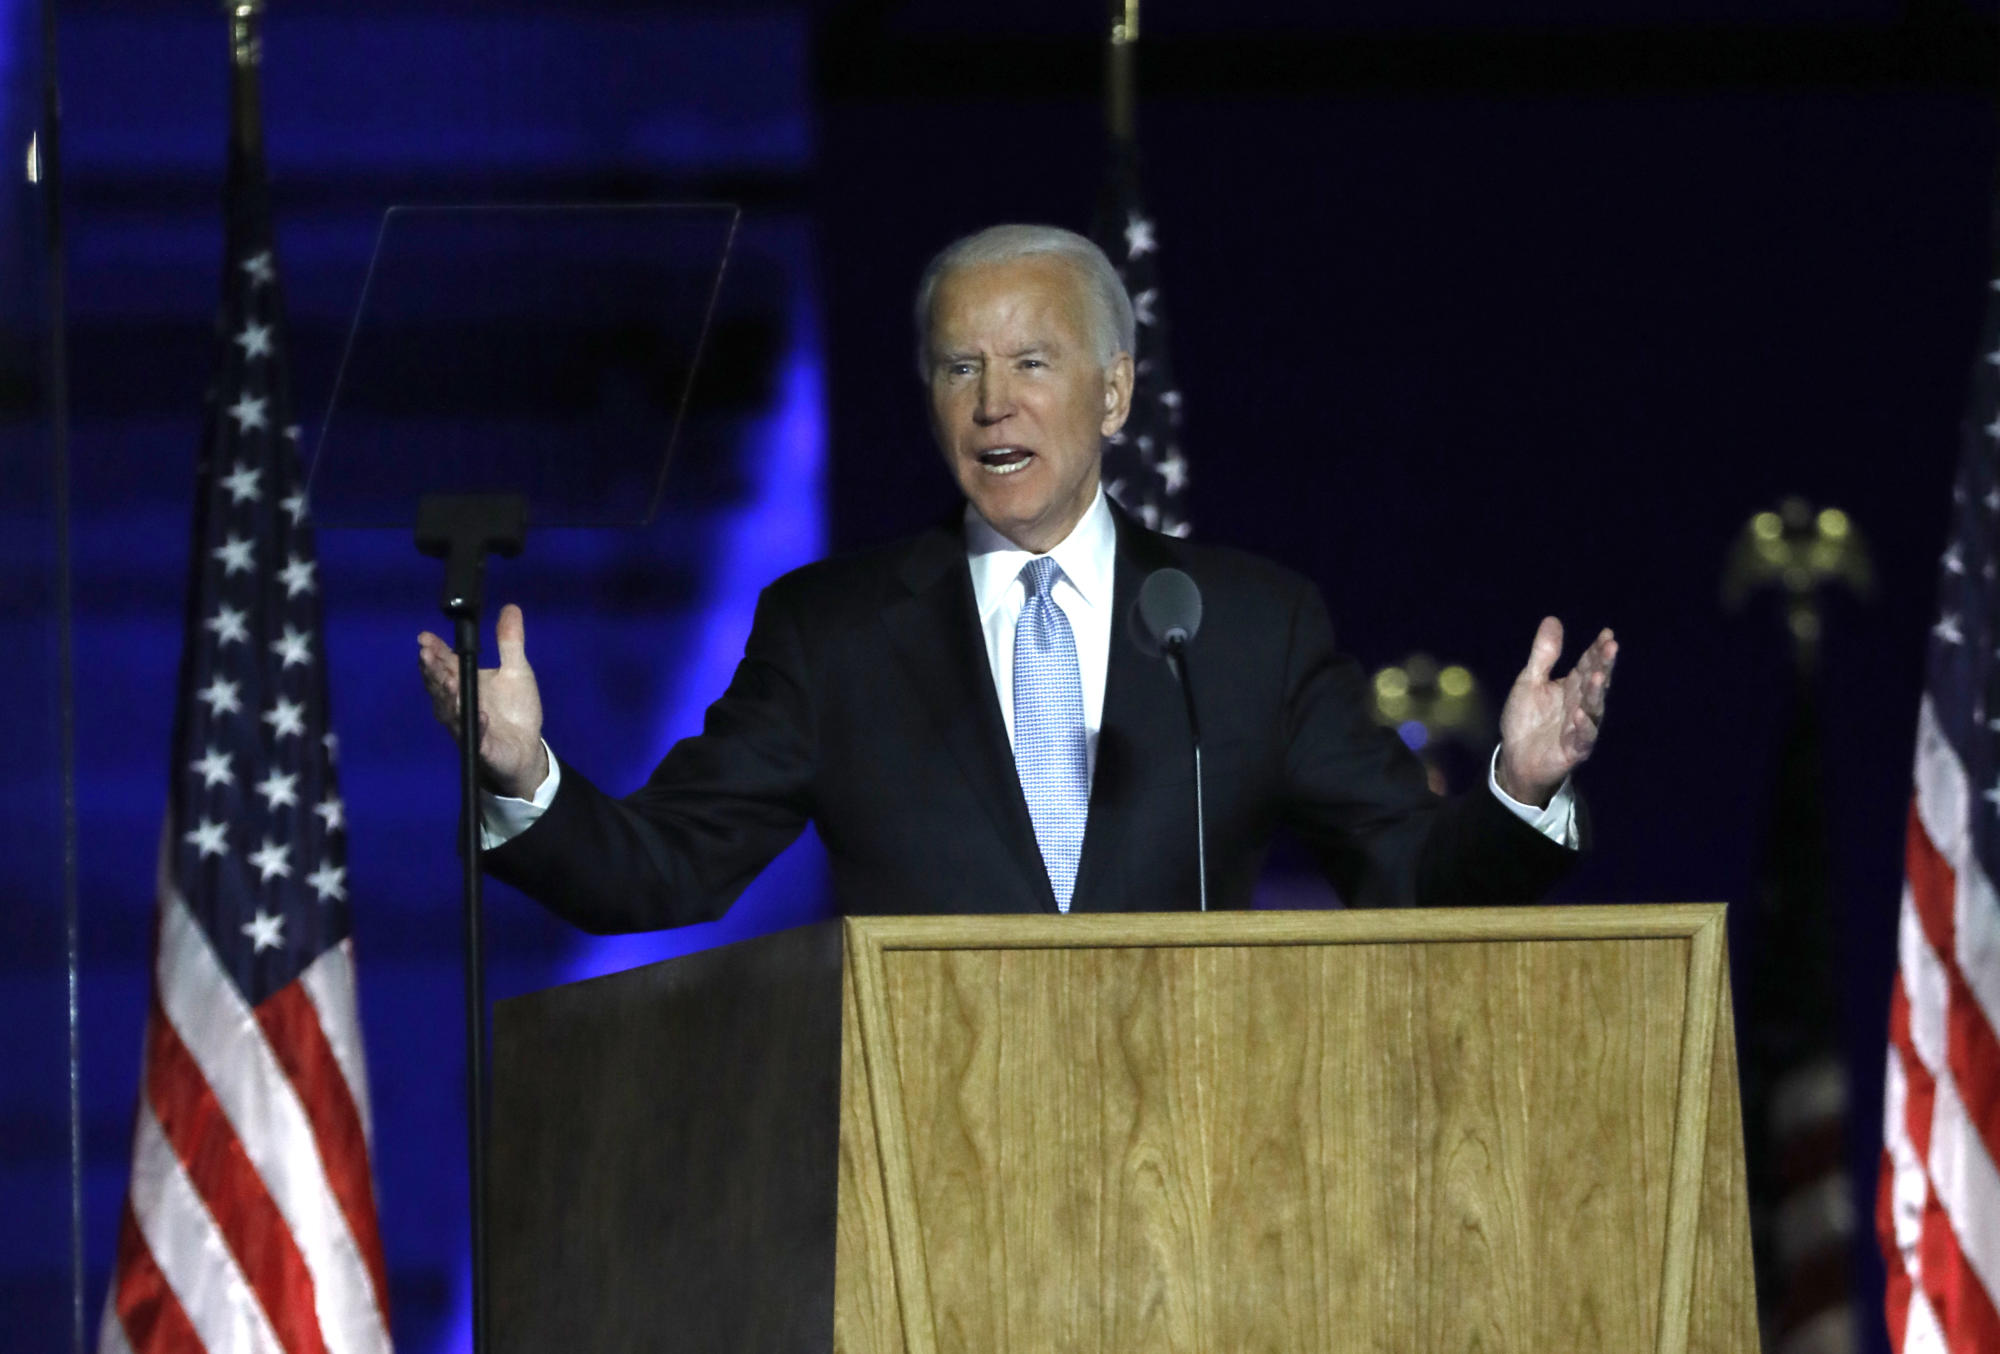 Stock market news live updates: Stock futures open higher after Biden victory